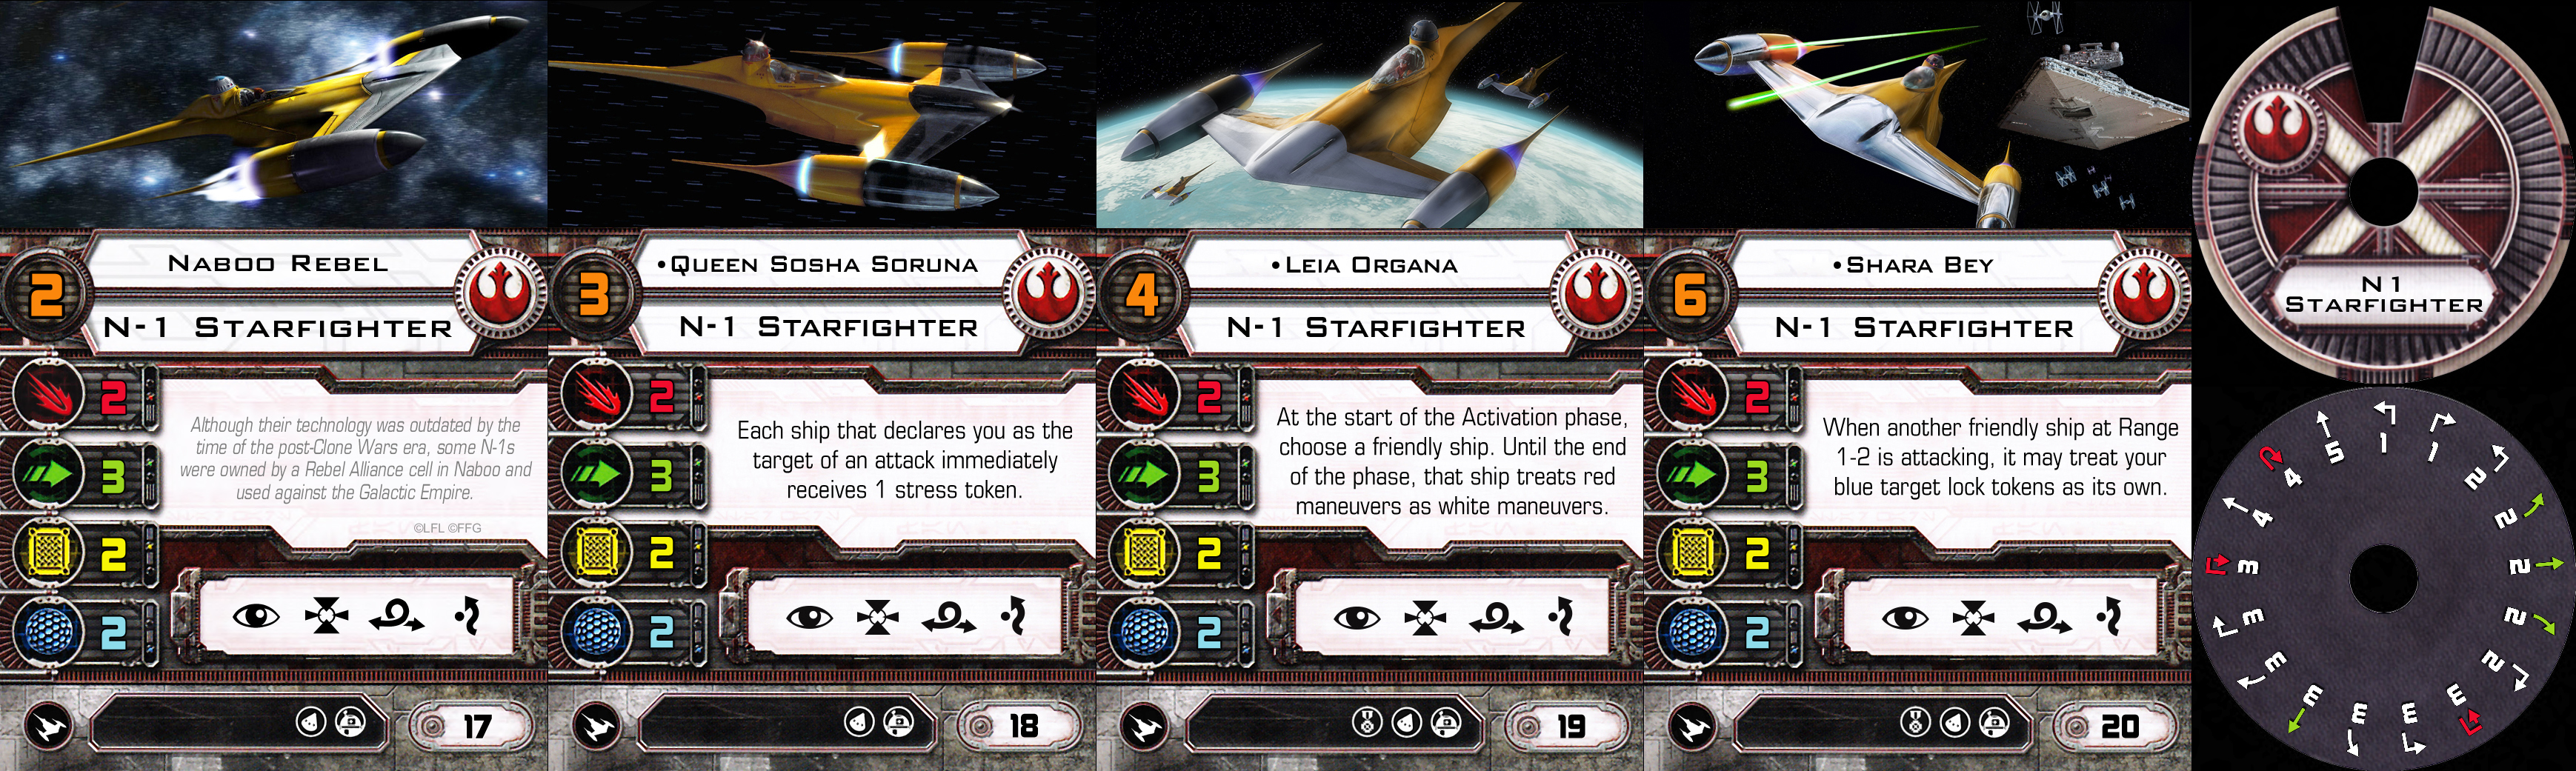 x_wing_miniatures_game___n1_starfighter_